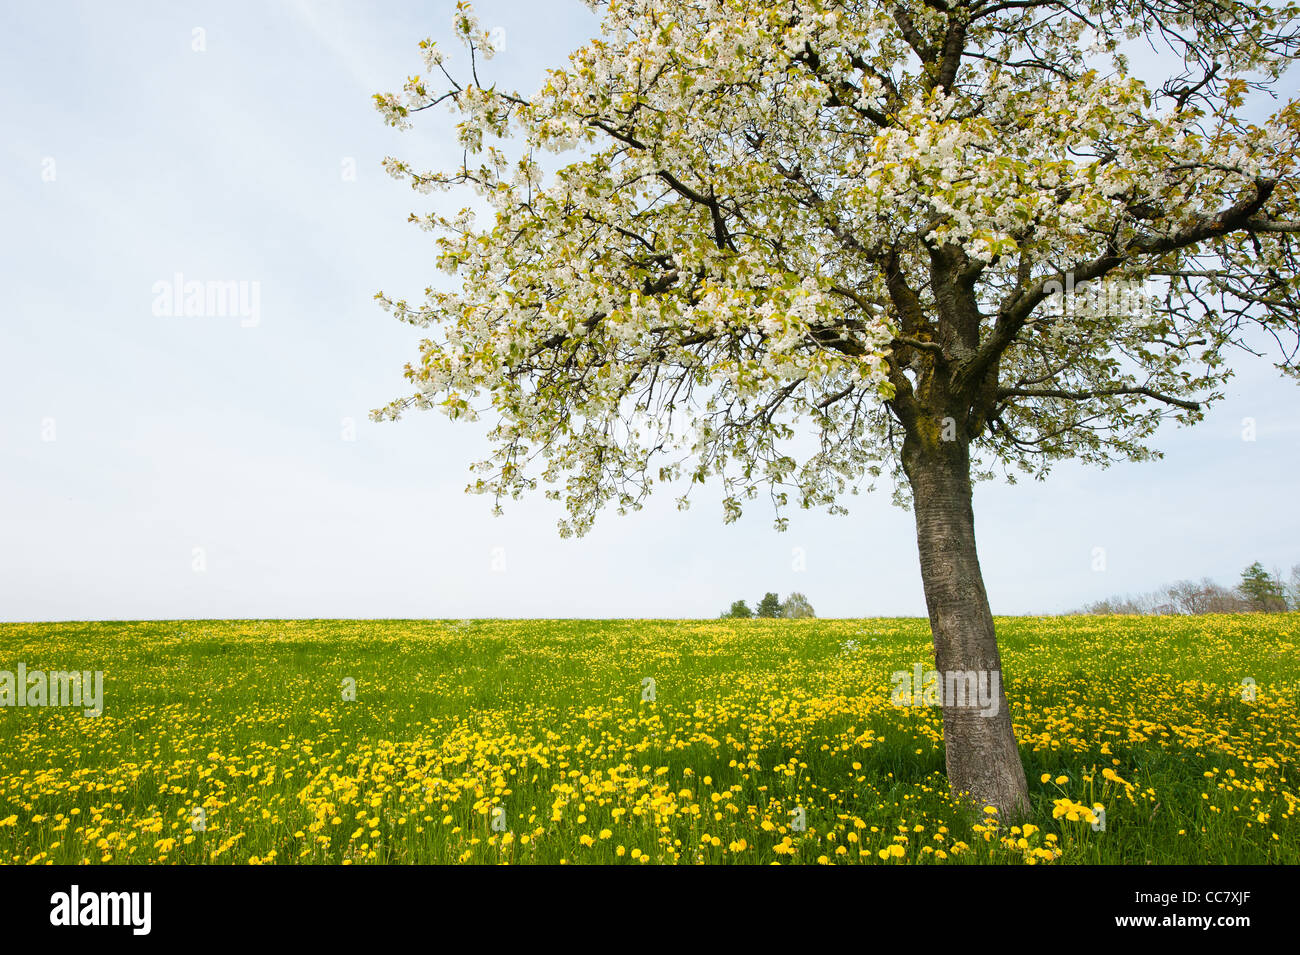 tree in spring on rural field with overcast sky - Stock Image